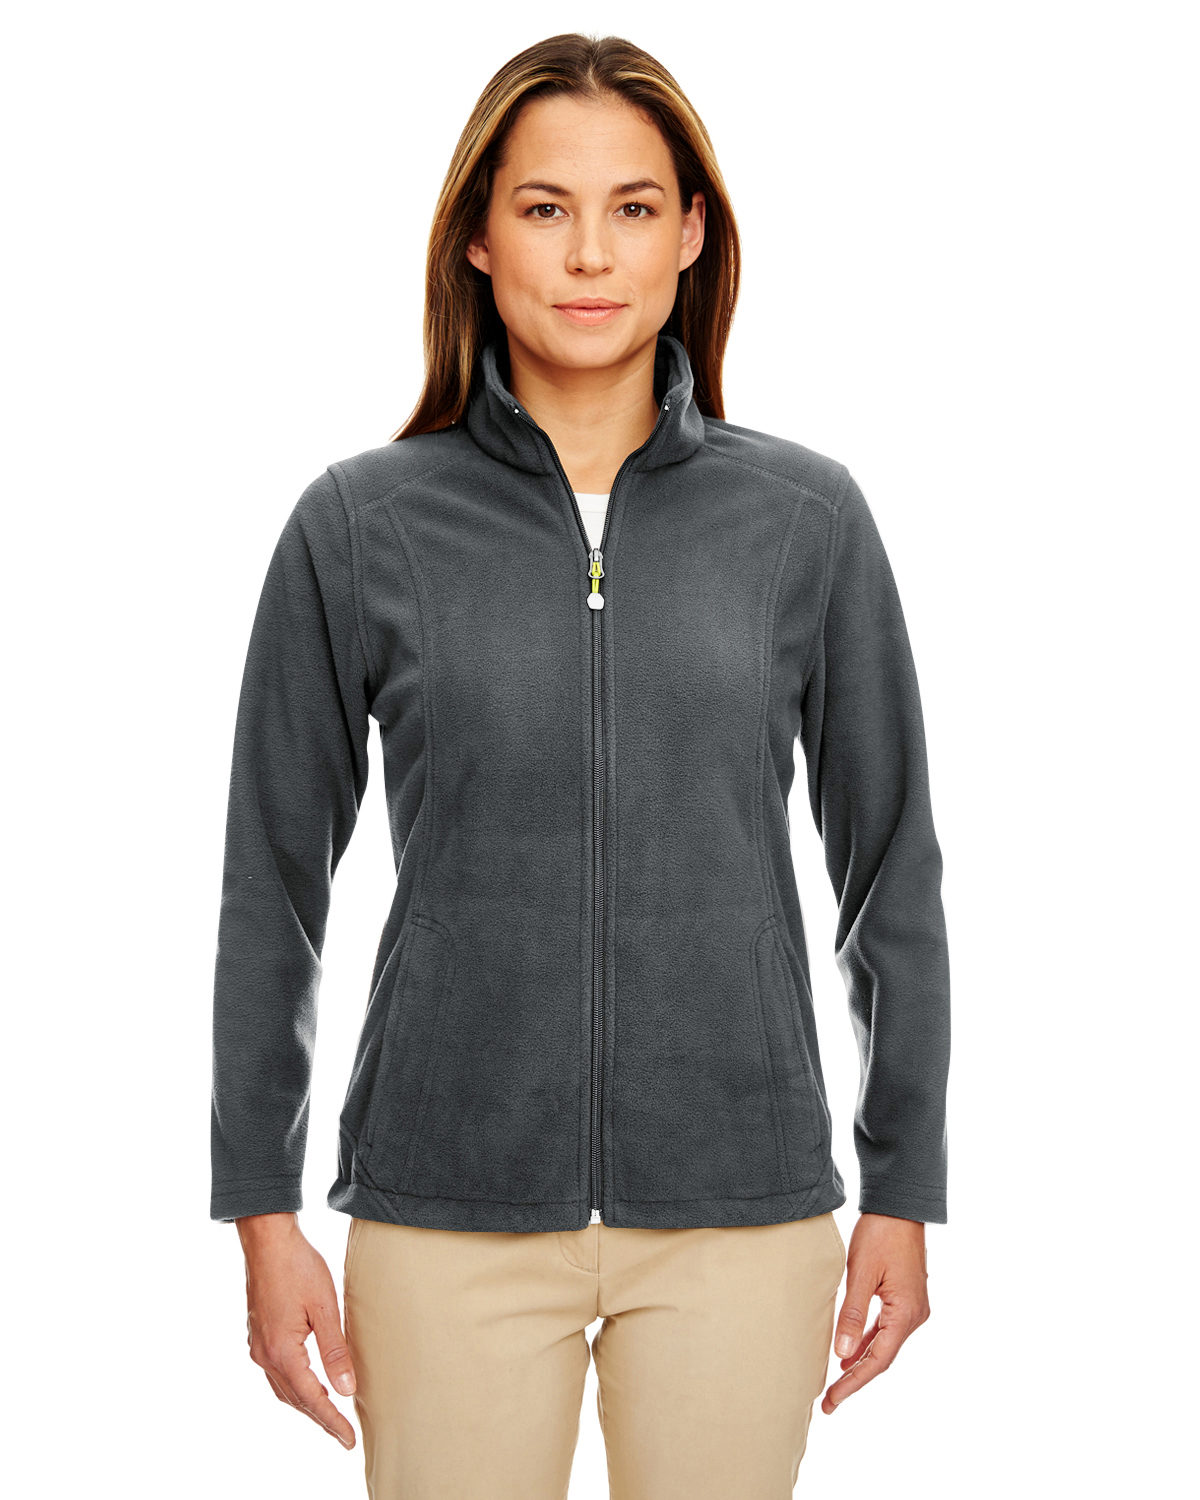 Ladies' Microfleece Full-Zip Jacket